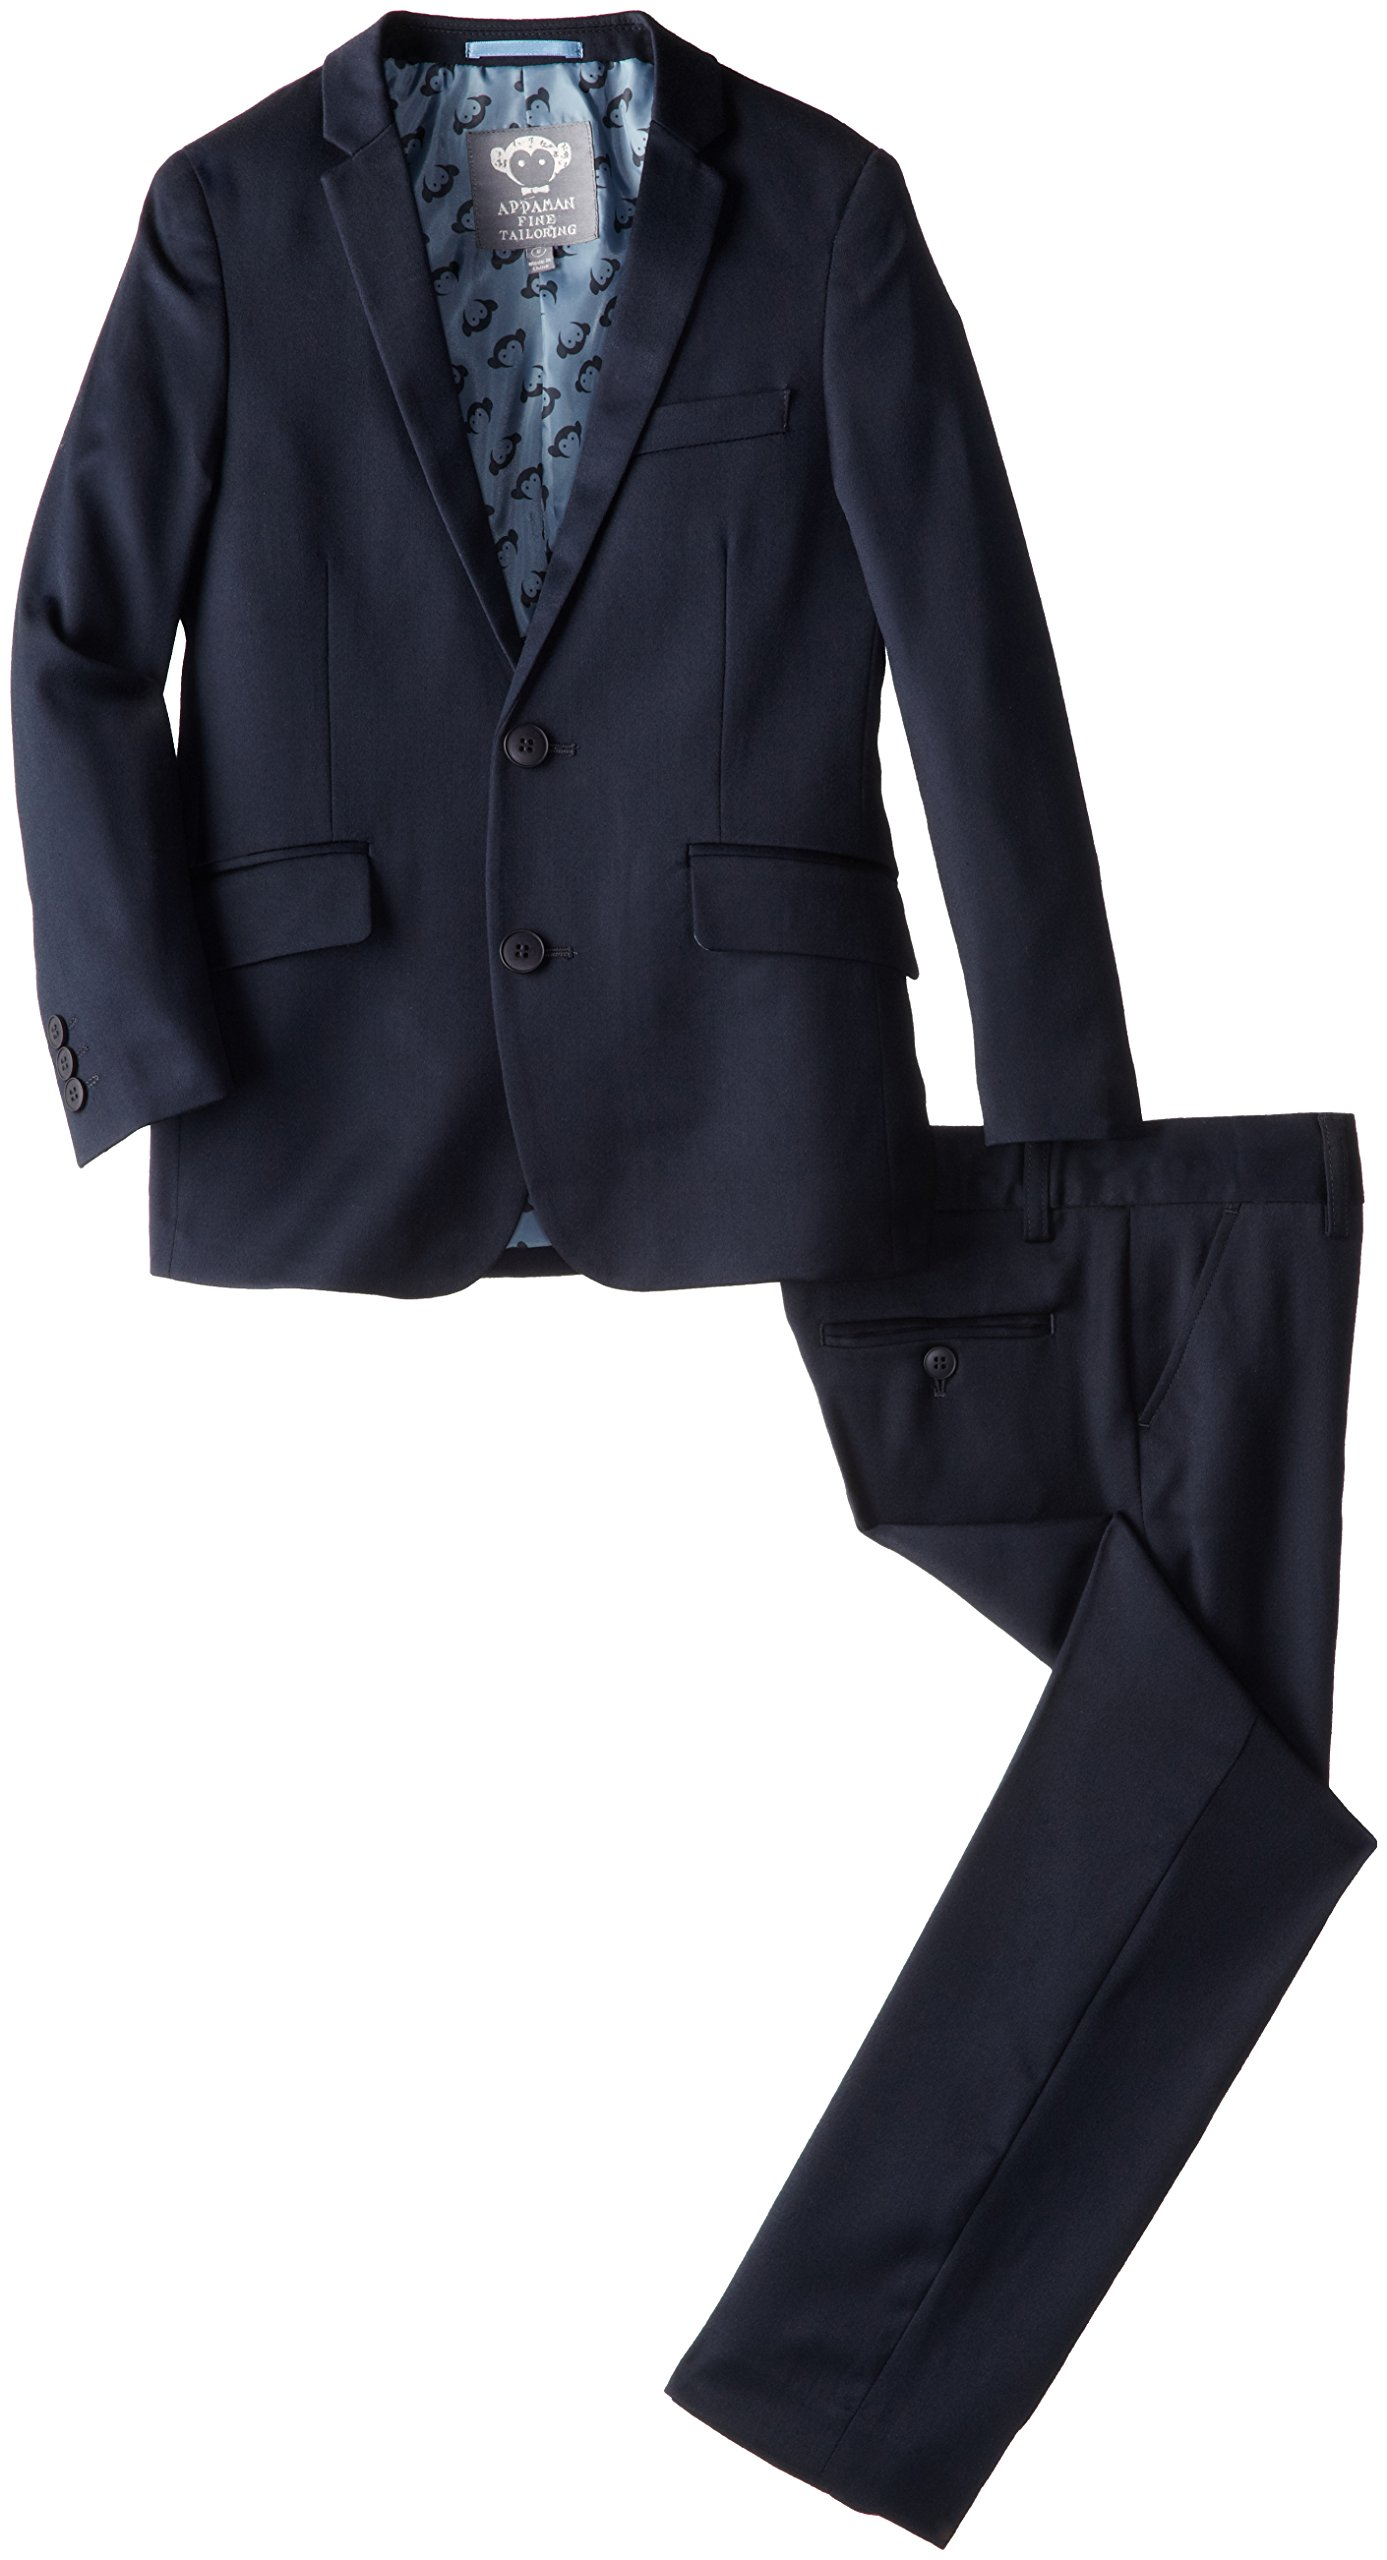 Appaman Big Boys' Two Piece Classic Mod Suit In Navy, Navy Blue, 10 by Appaman